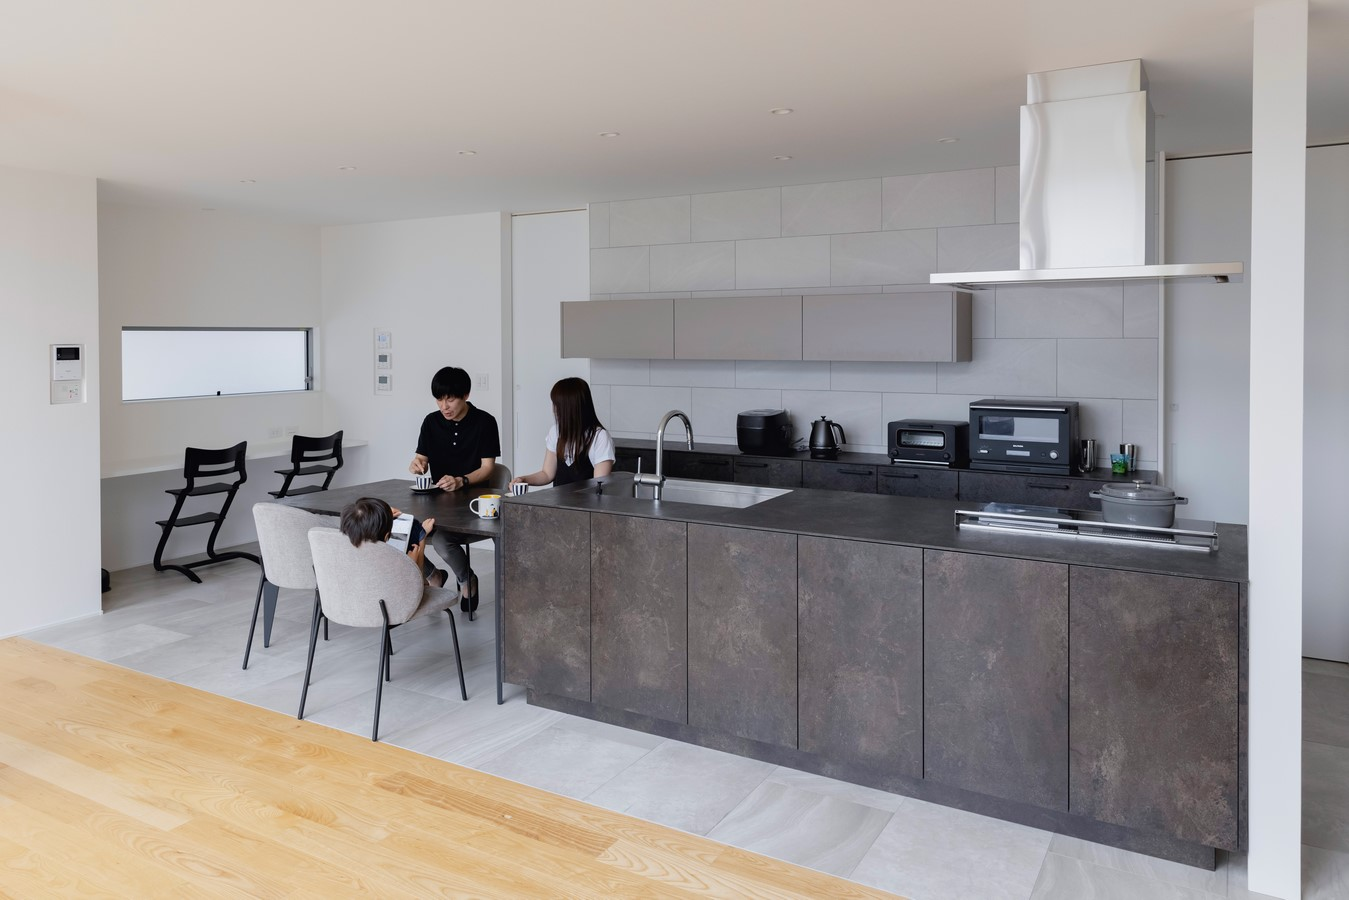 5157 Nagahama House by Alts Design Office: Sheet 2